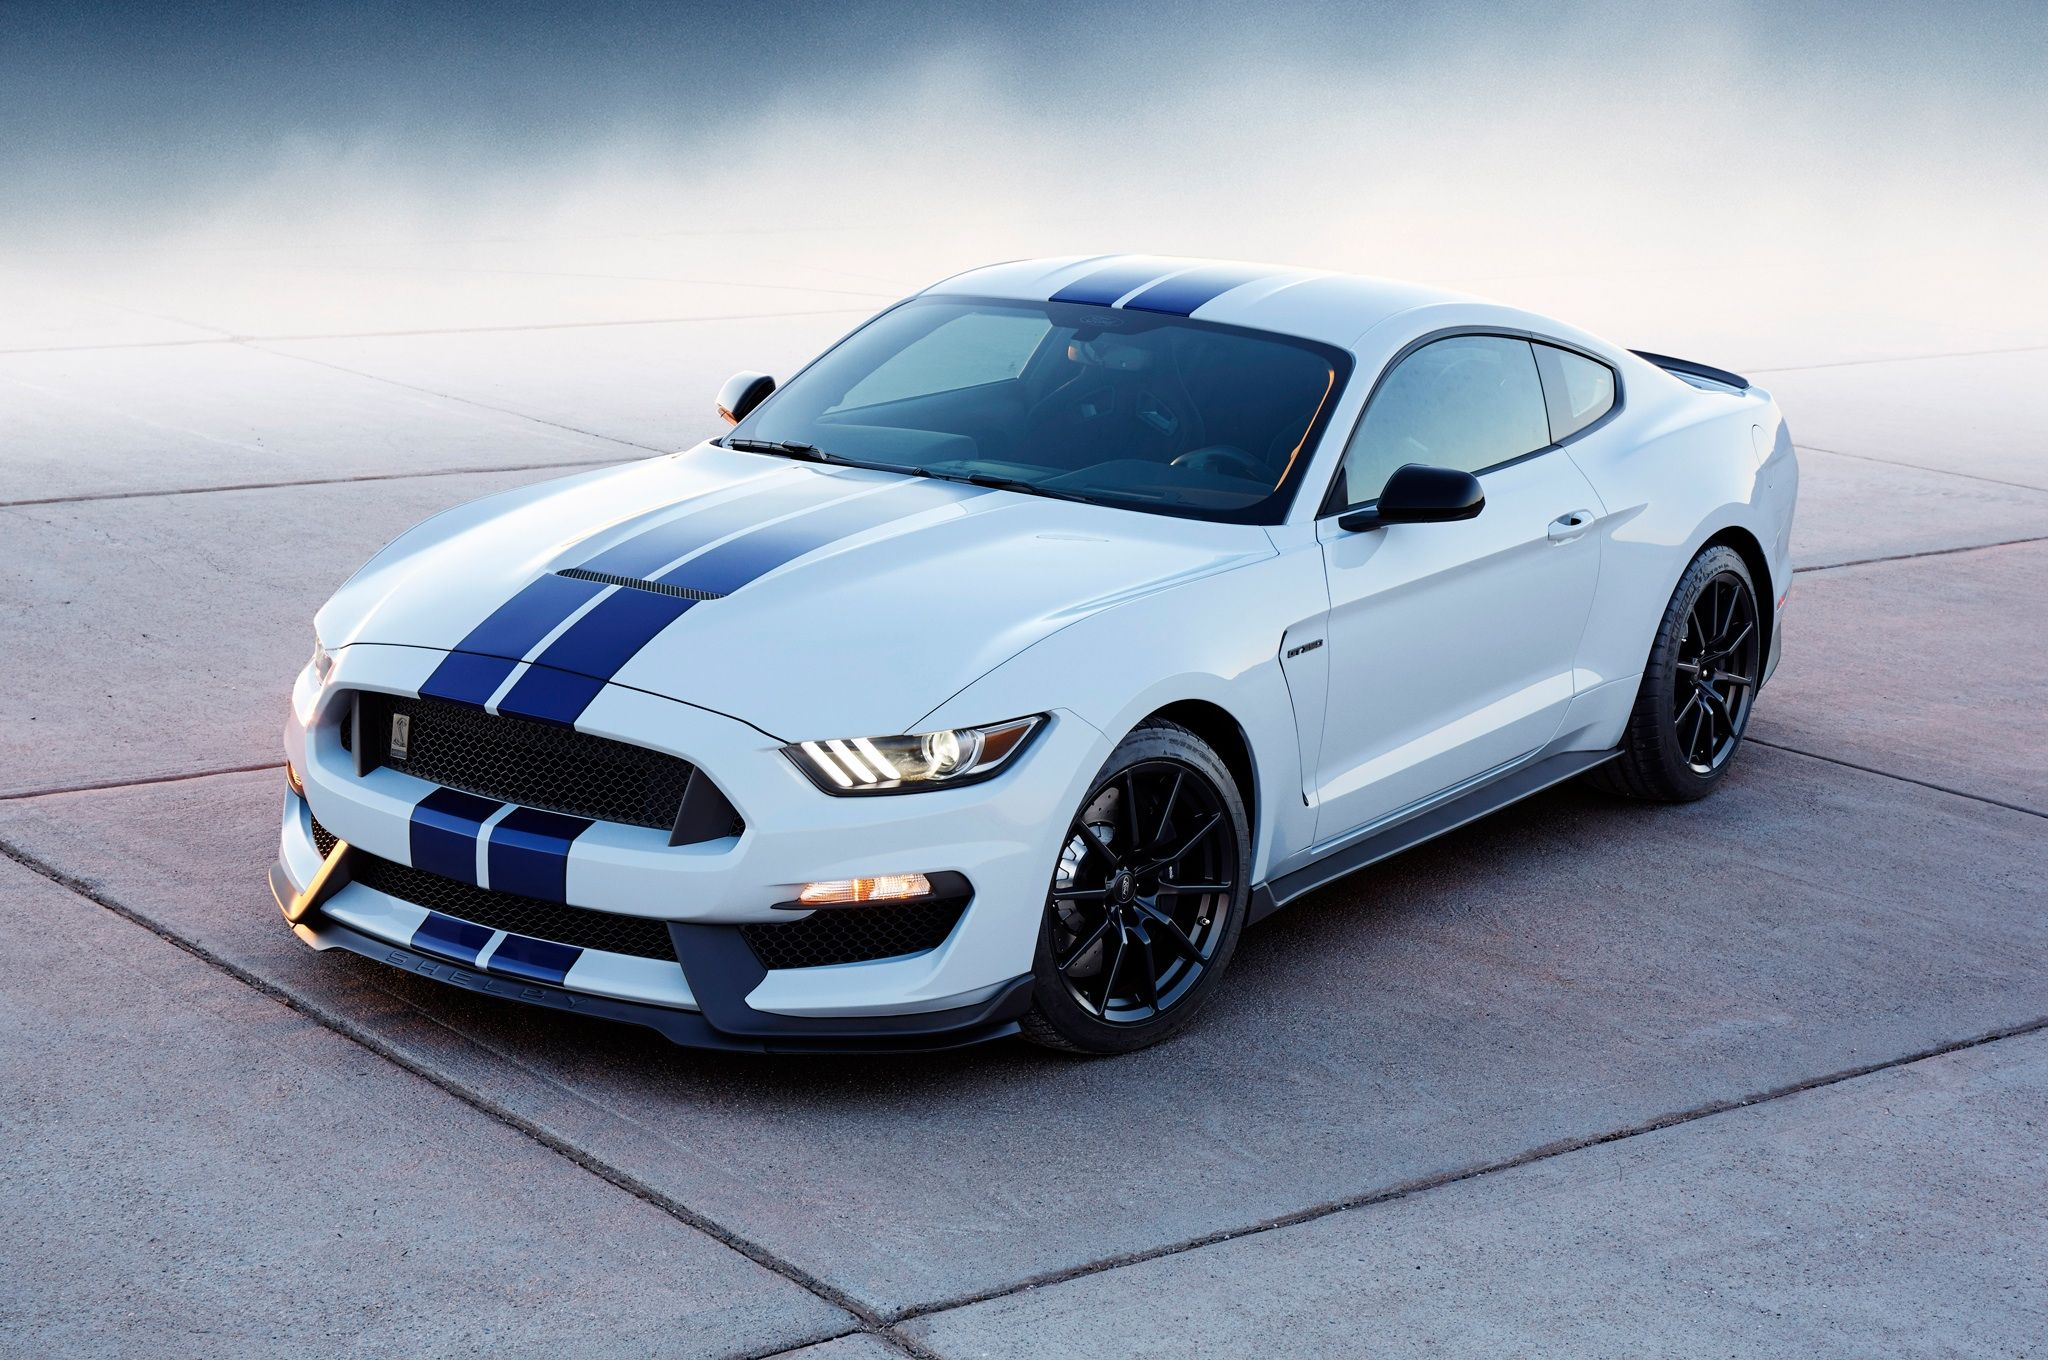 photography vehicles pinterest car images cars and sports cars